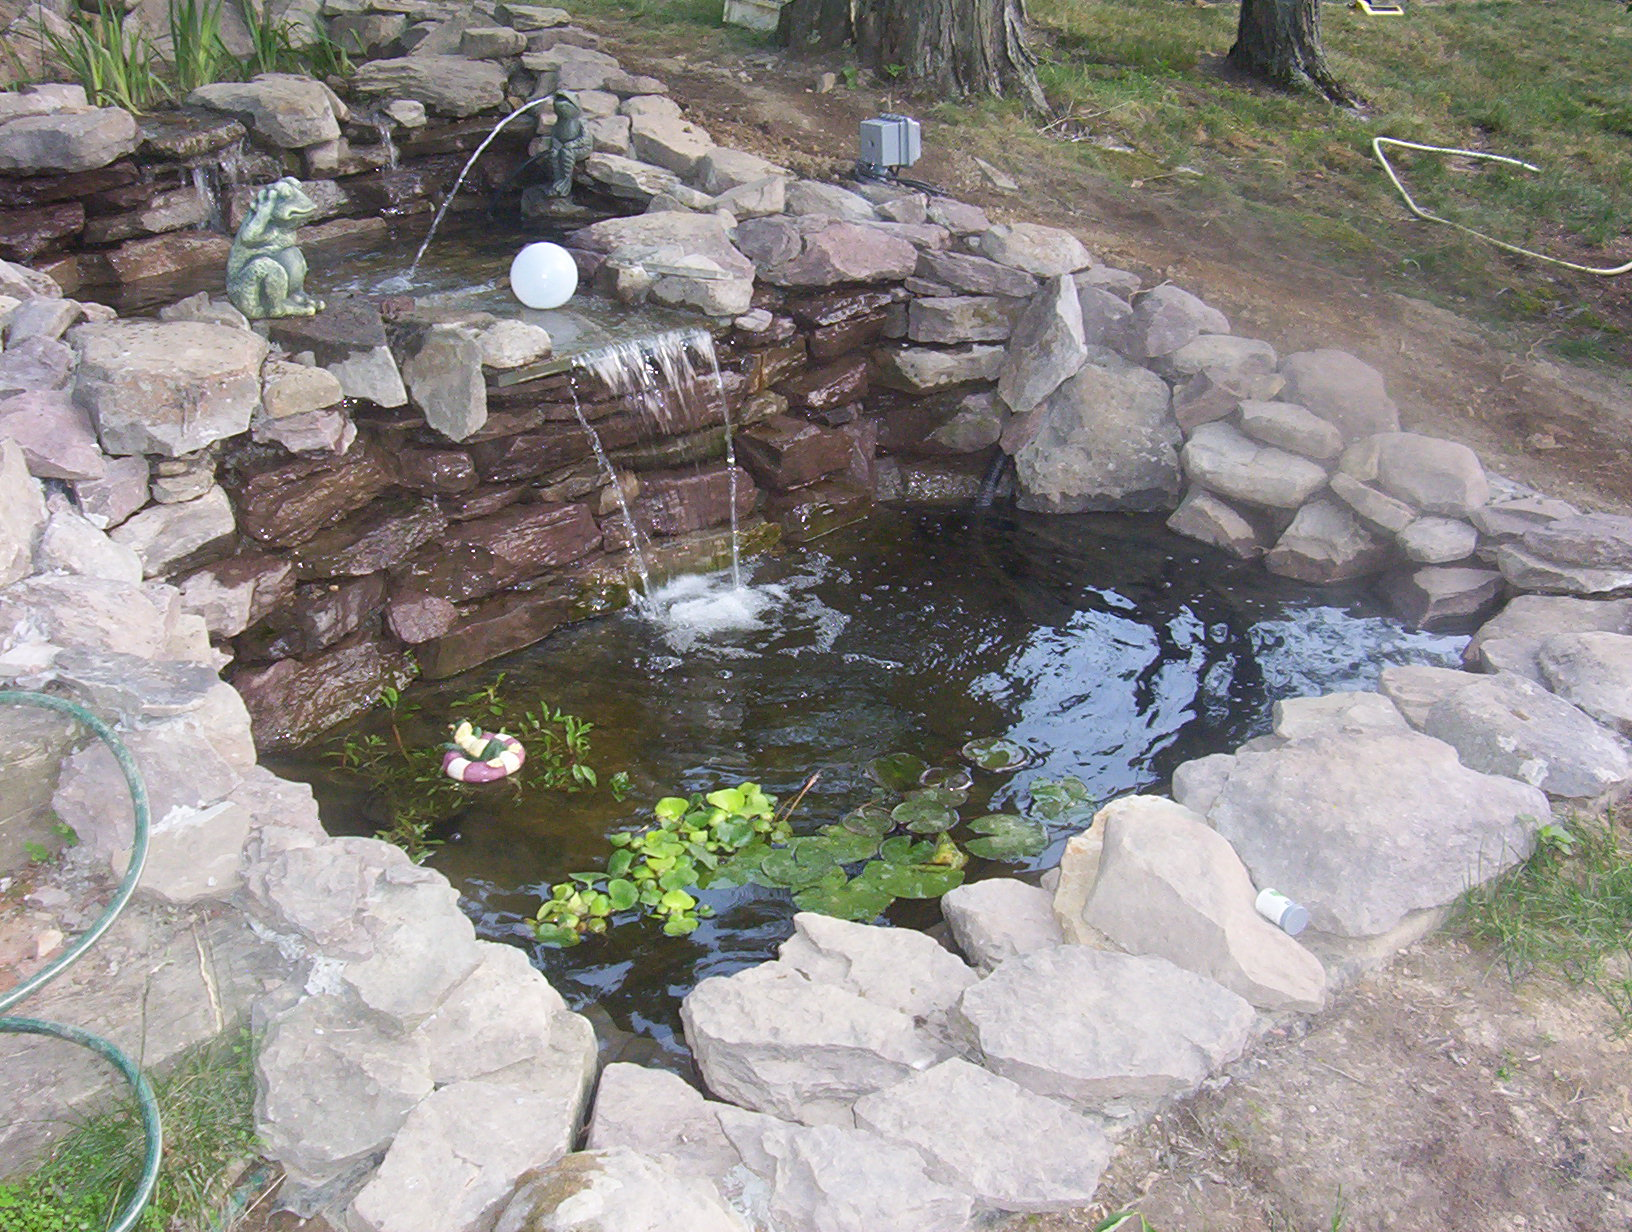 Construction of simmons family fish pond 2006 2007 for Koi fish in kiddie pool